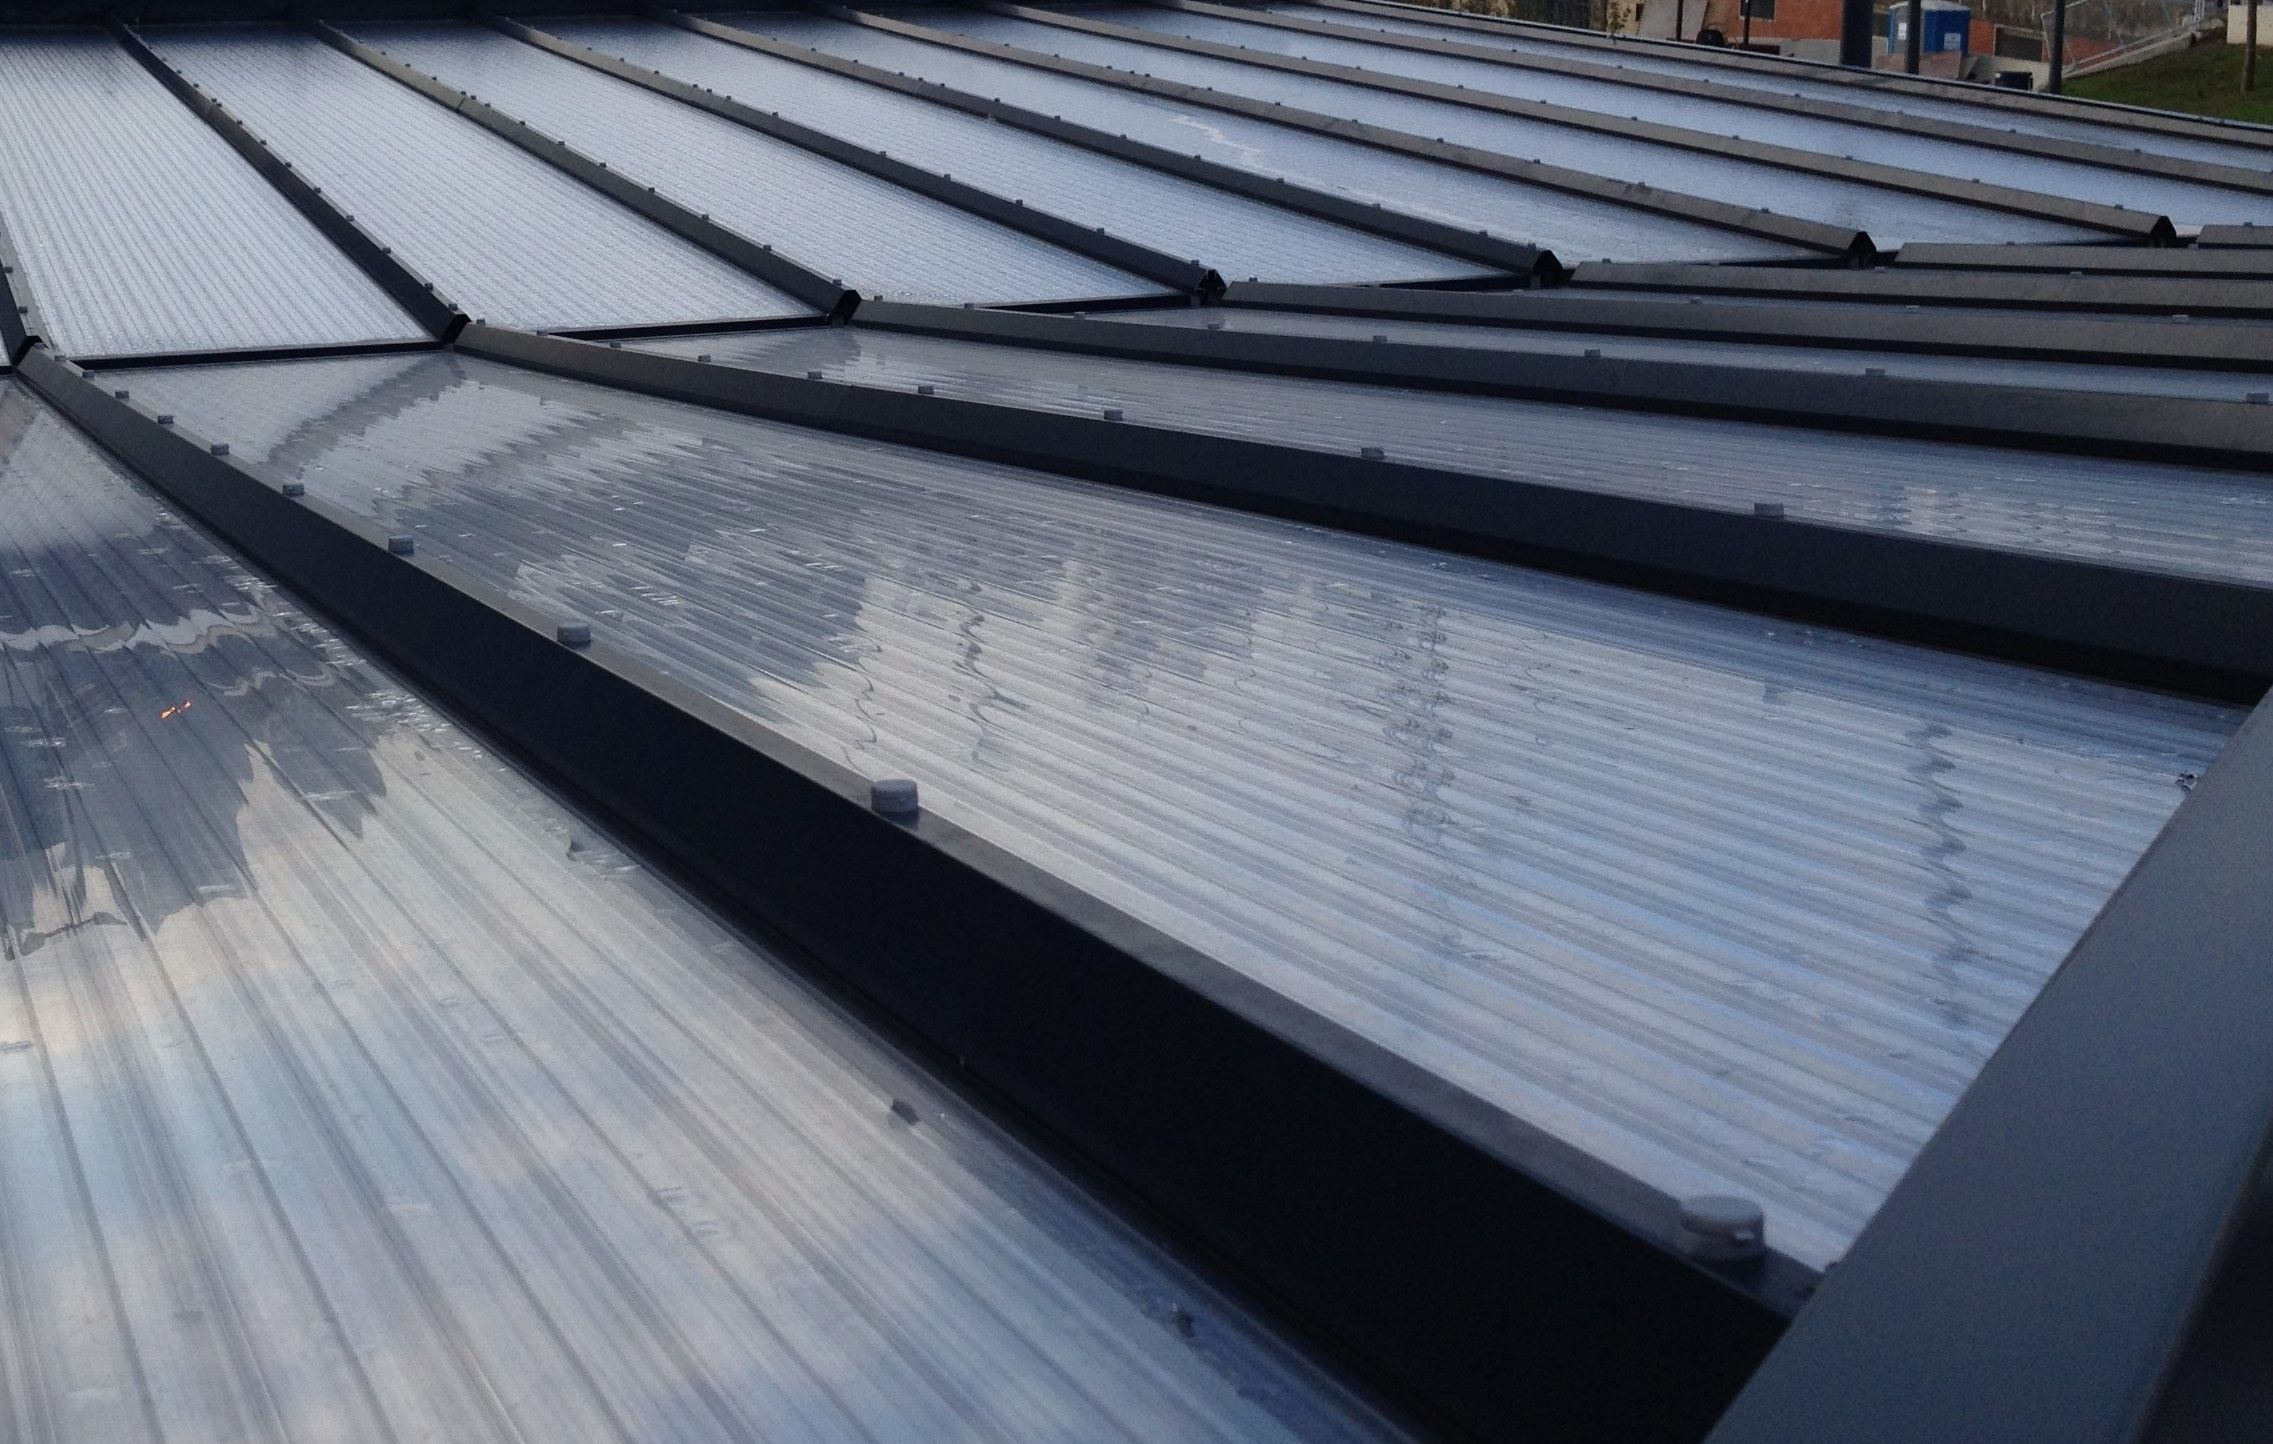 The P280 Structural Glazing Bar Has Been Used Here To Glaze 25mm Multiwall Polycarbonate Sheet On The Roof Of This Manchester Build In 2020 Ral Colours Structures Roof